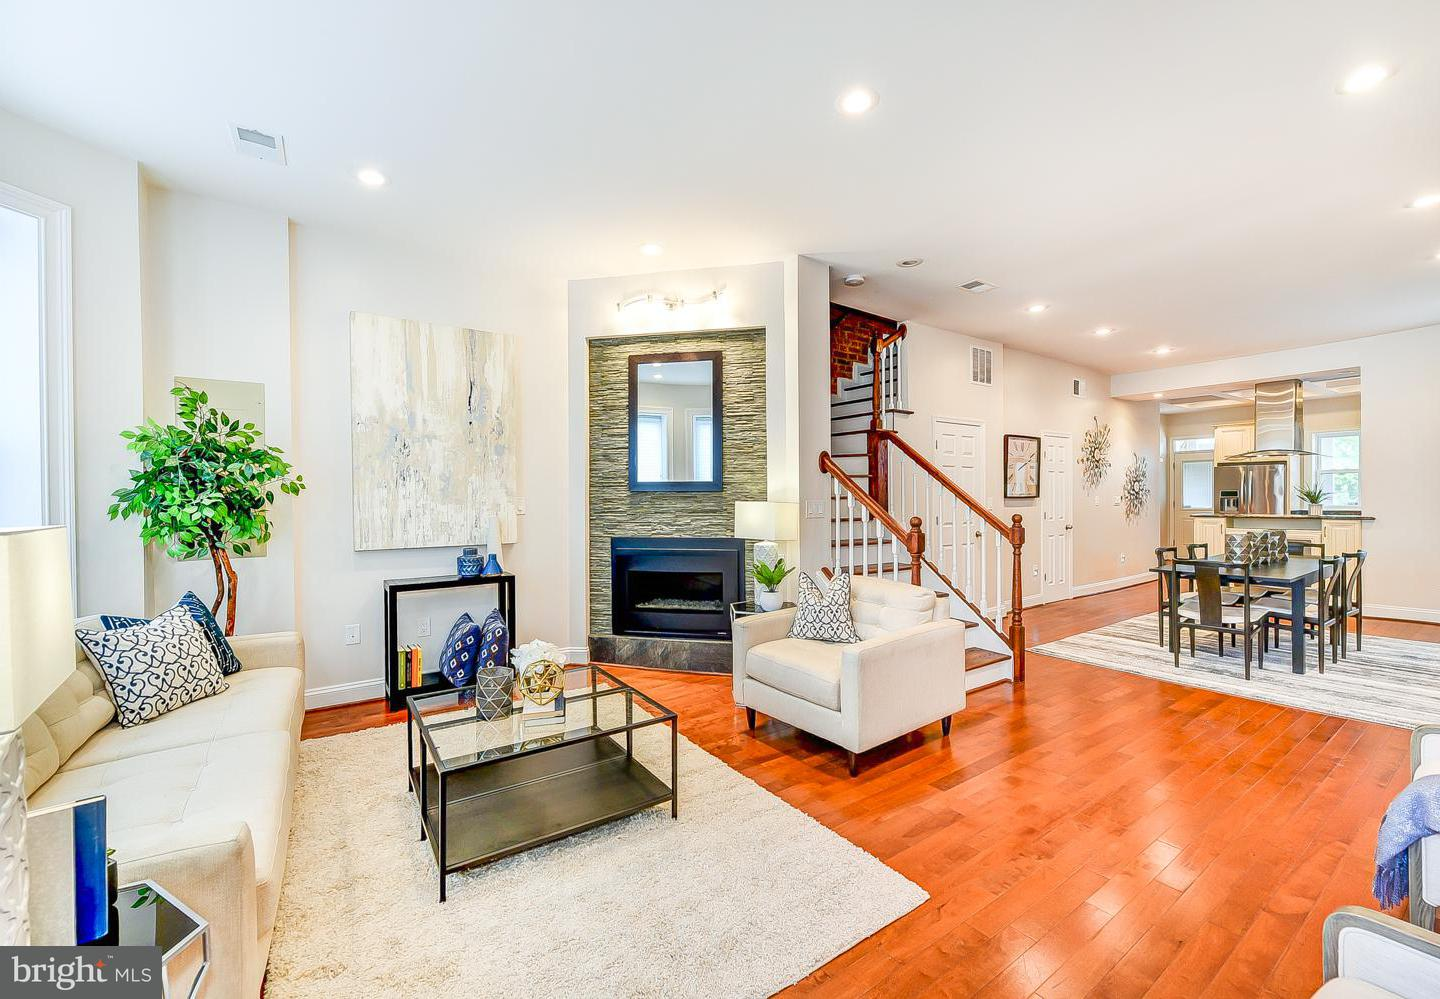 Single Family for Sale at 31 T St NW Washington, District Of Columbia 20001 United States